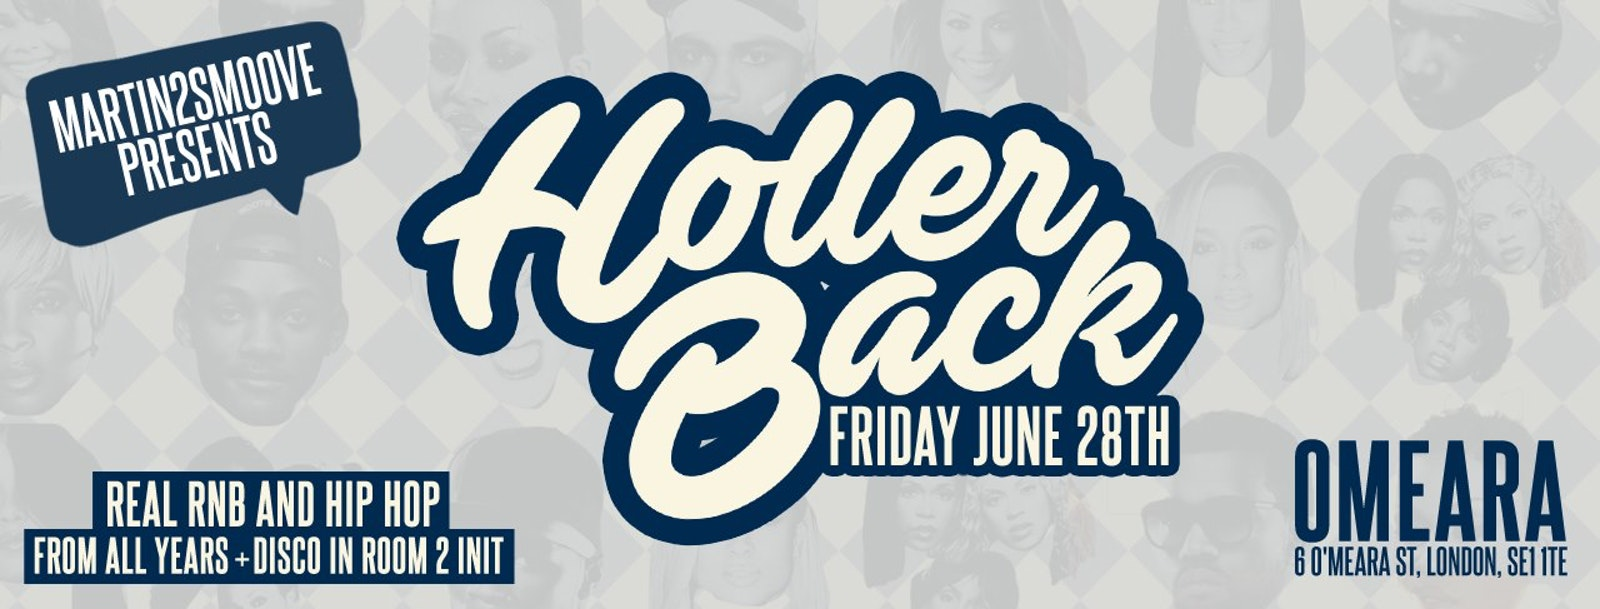 Holler Back – HipHop n R&B at Omeara London | Friday June 28th 2019